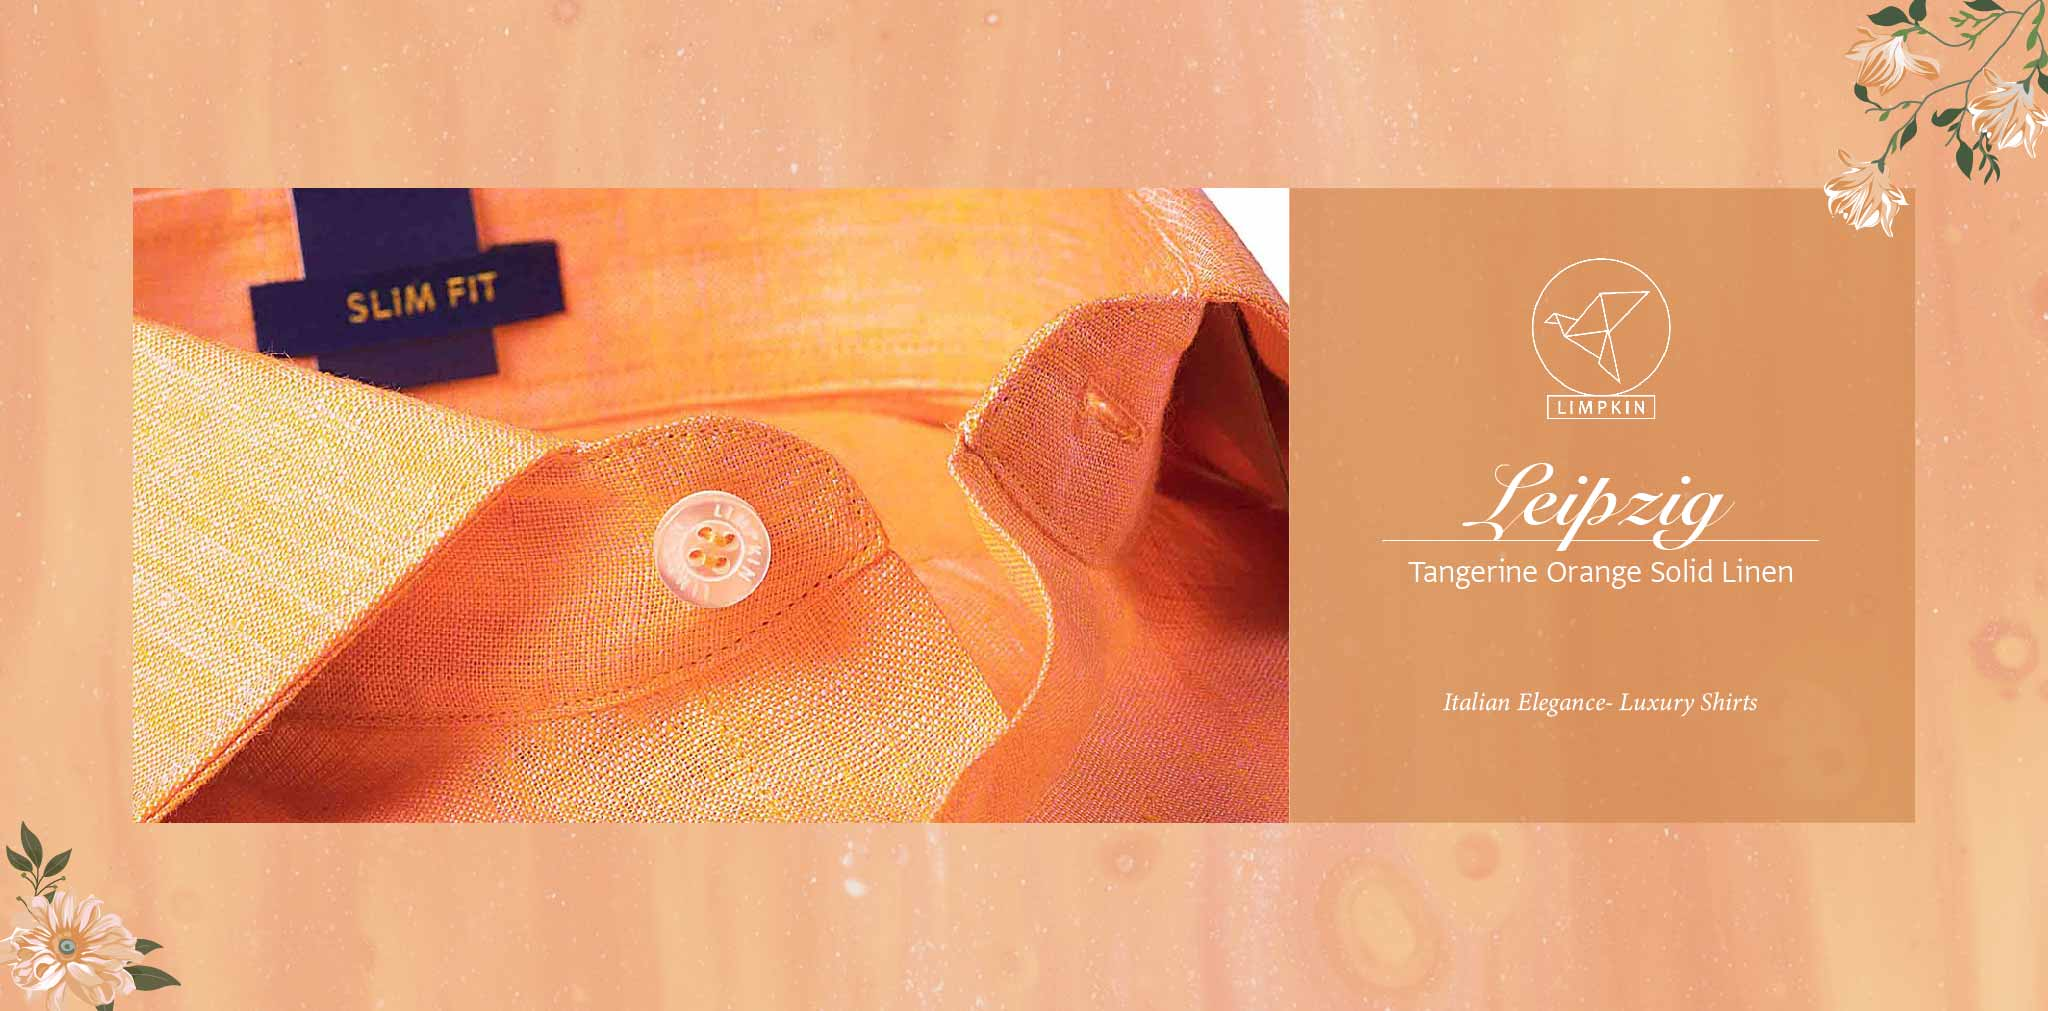 Leipzig- Tangerine Orange Solid Linen- 66's Lea Pure Italian Linen- Delivery from 20th Oct - Banner